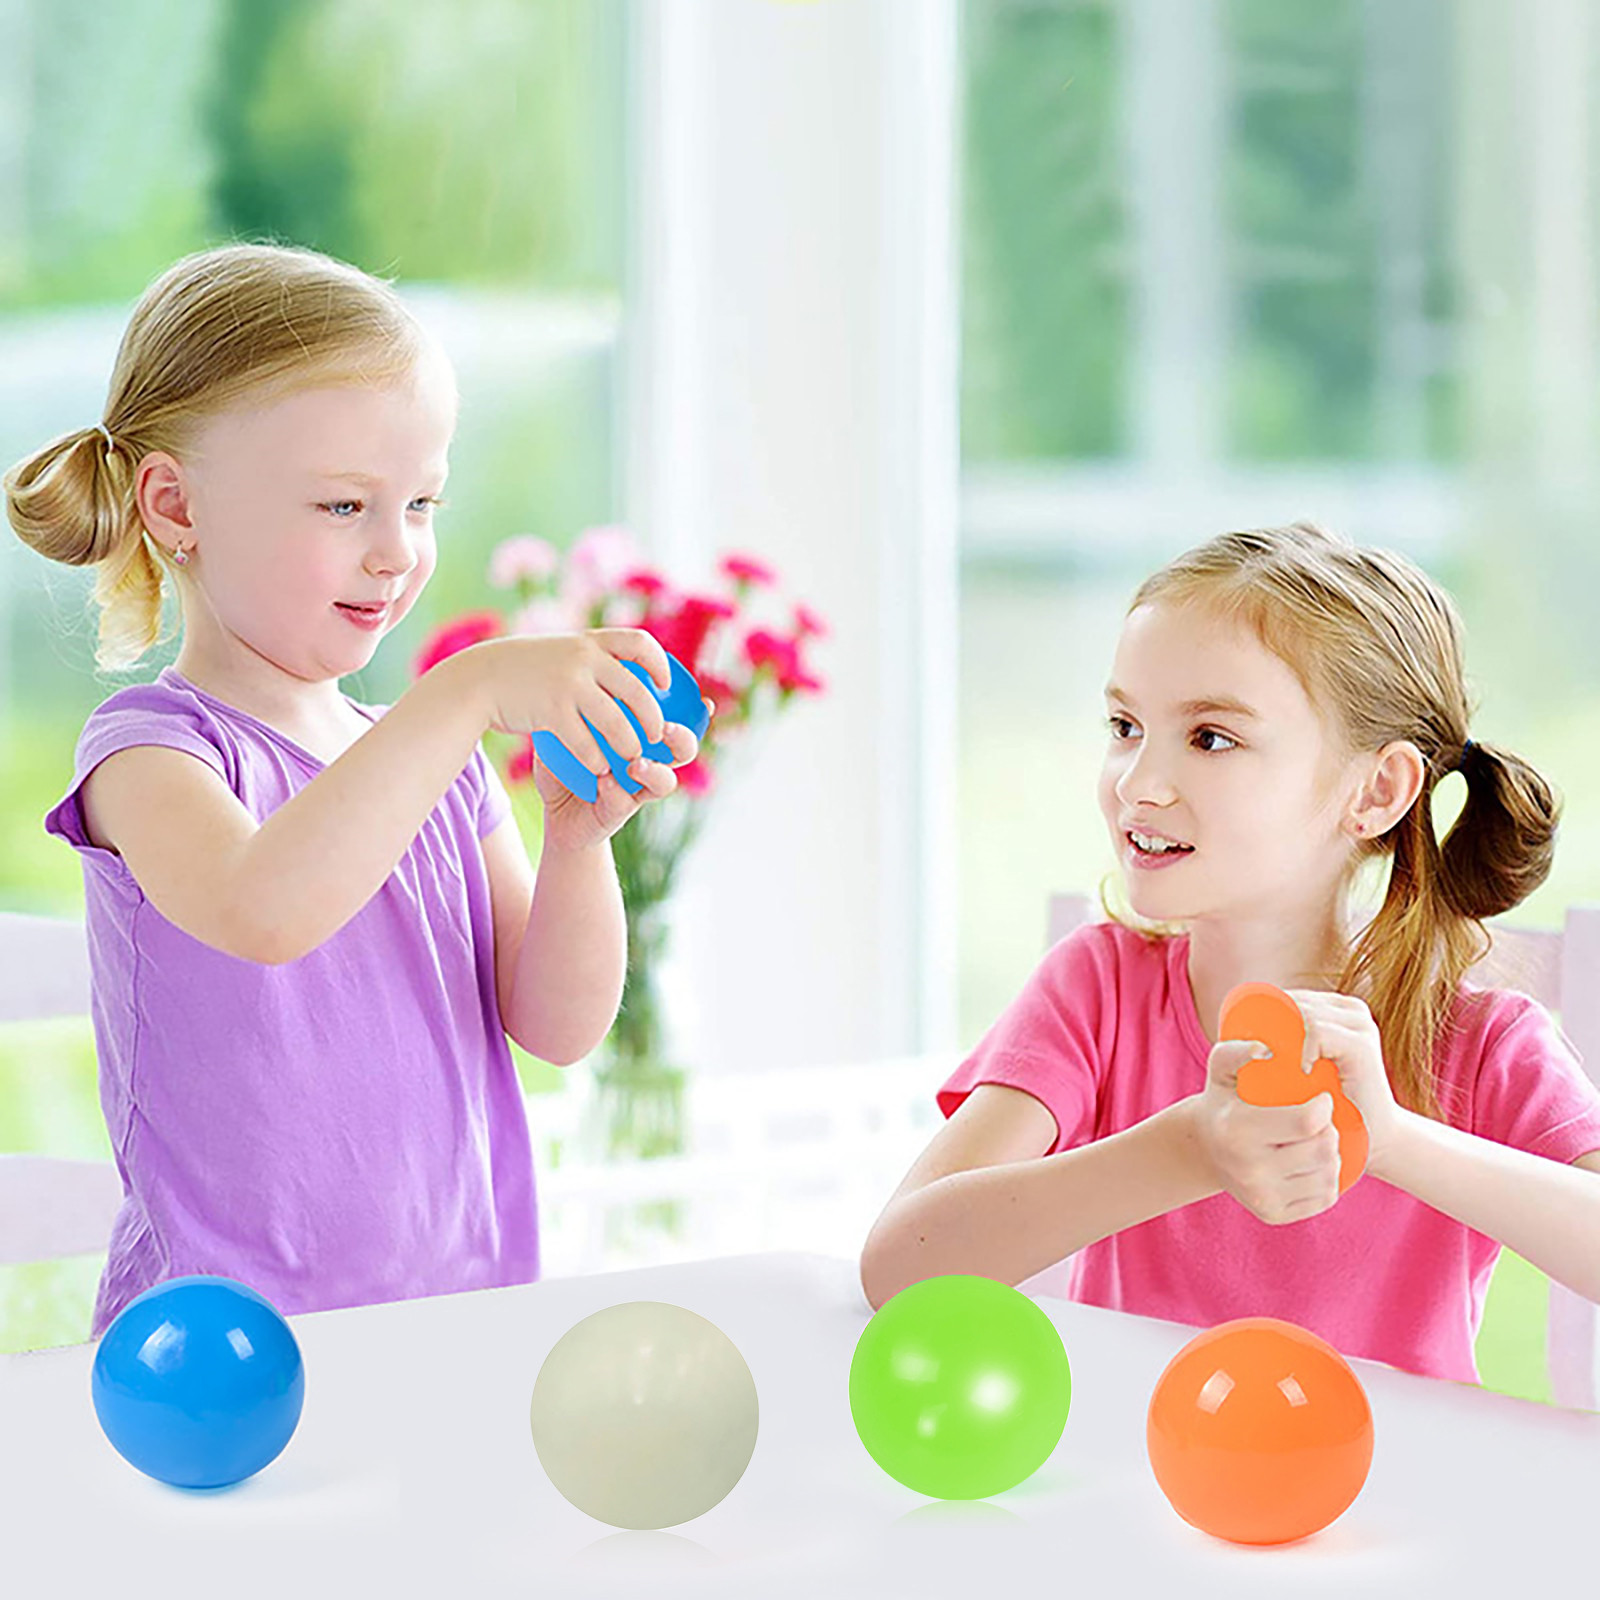 Sticky-Target-Balls Fidget-Toy Squash Decompression Stress Globbles Gift 4pc Throw Wall-Ball img5